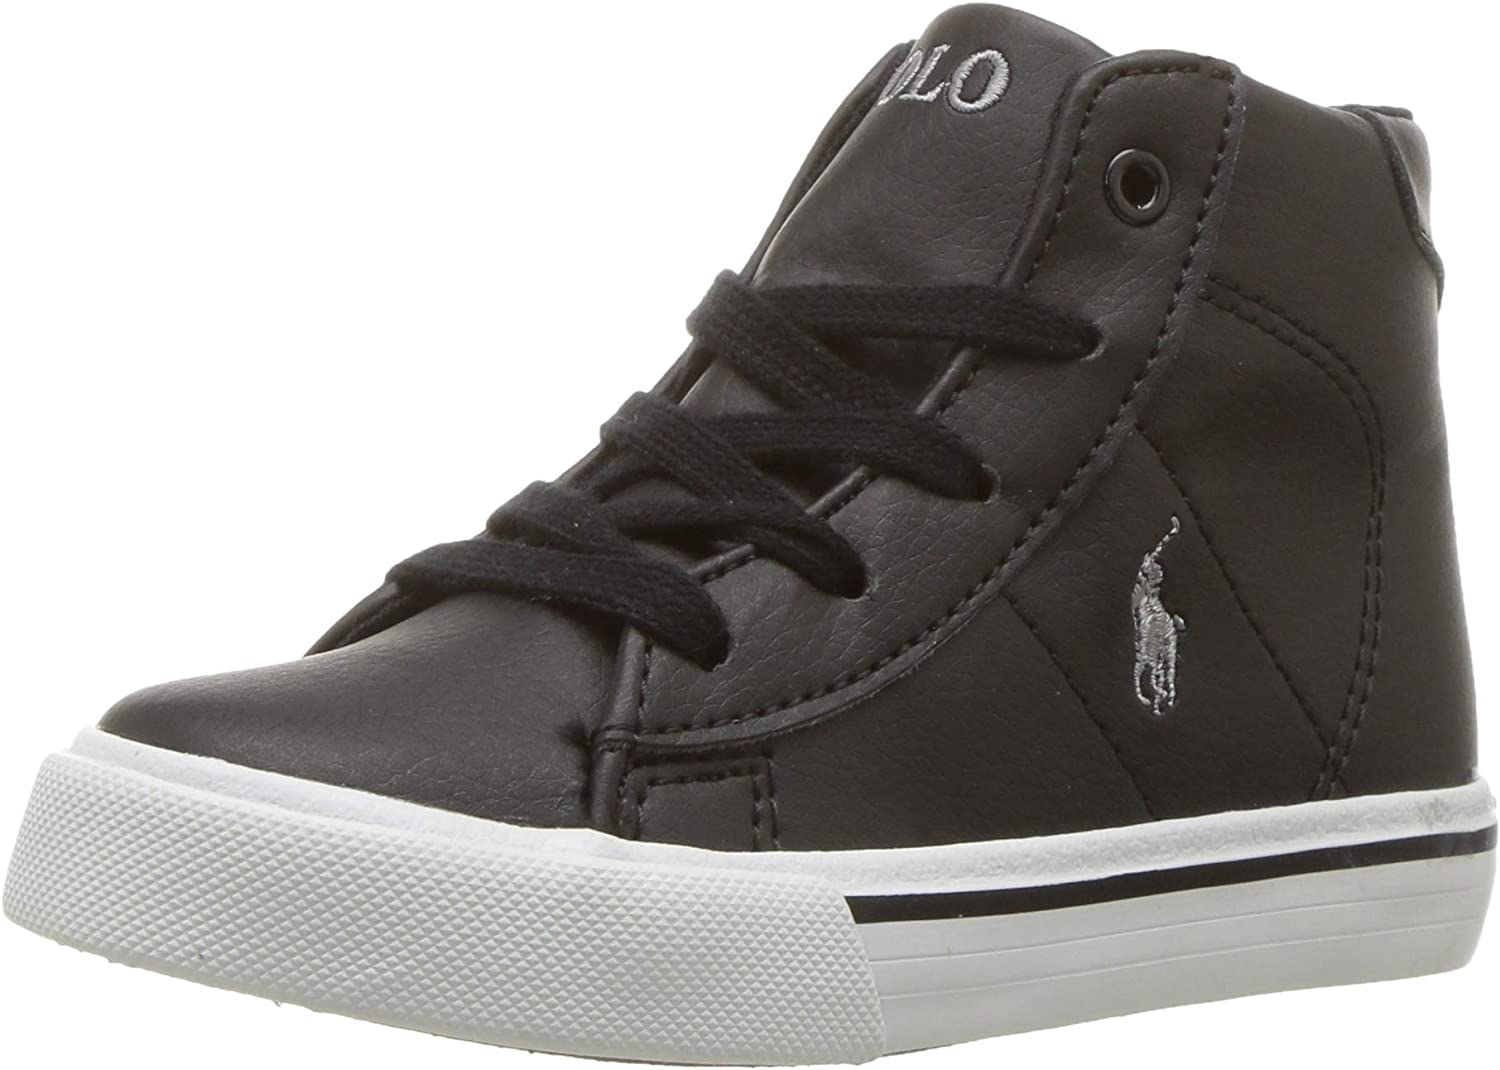 70% OFF Outlet Polo Ralph Lauren Unisex-Child Sneaker Mid Popular products Easten